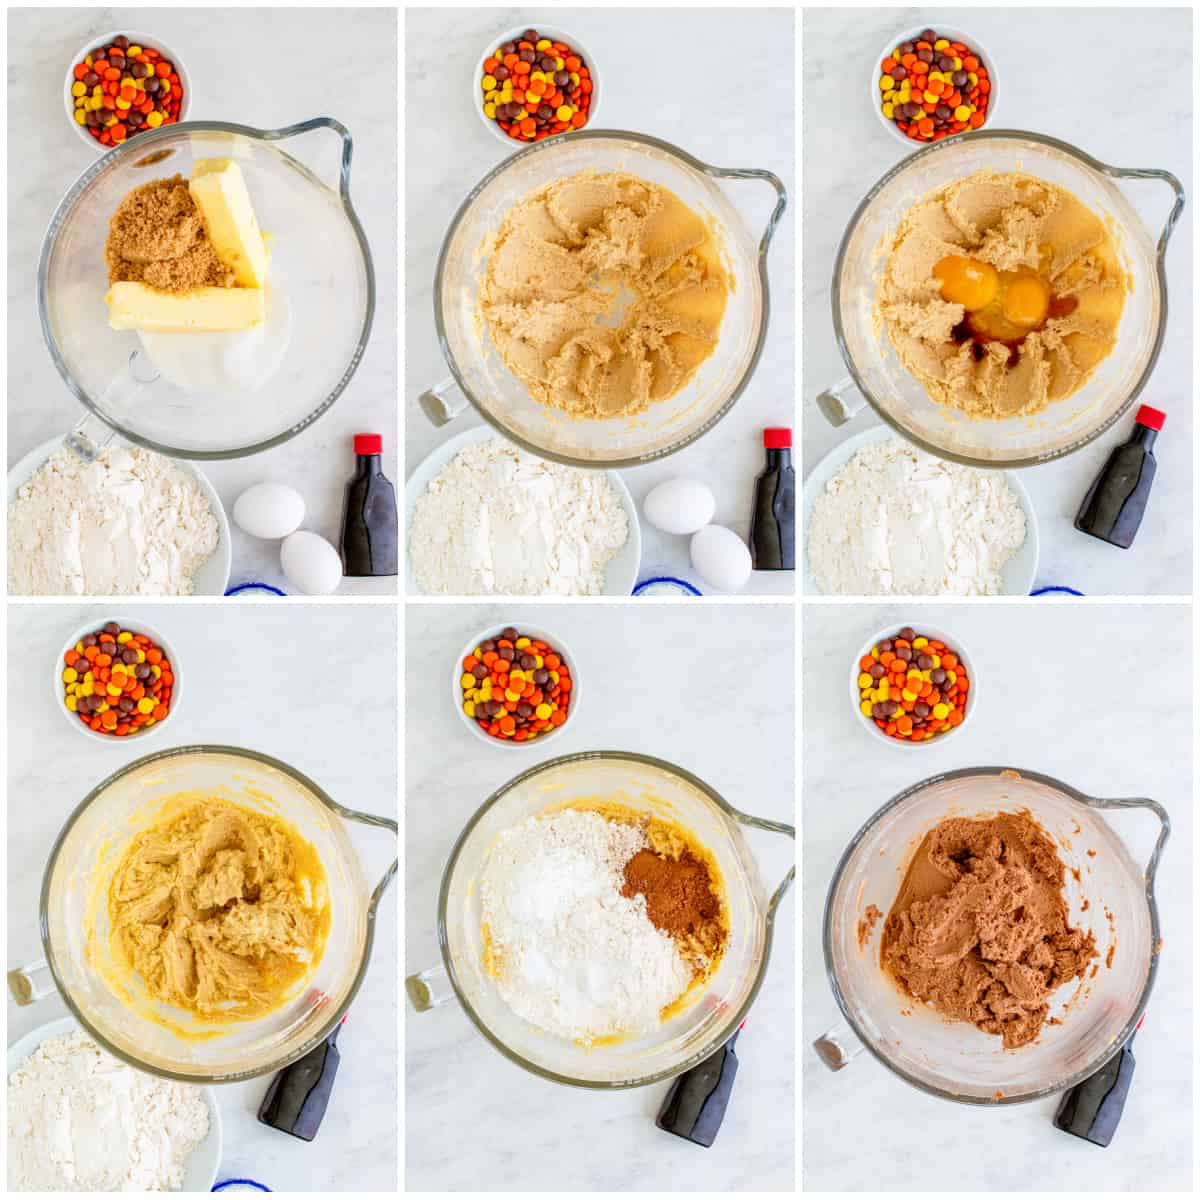 Step by step photos on making cookie dough